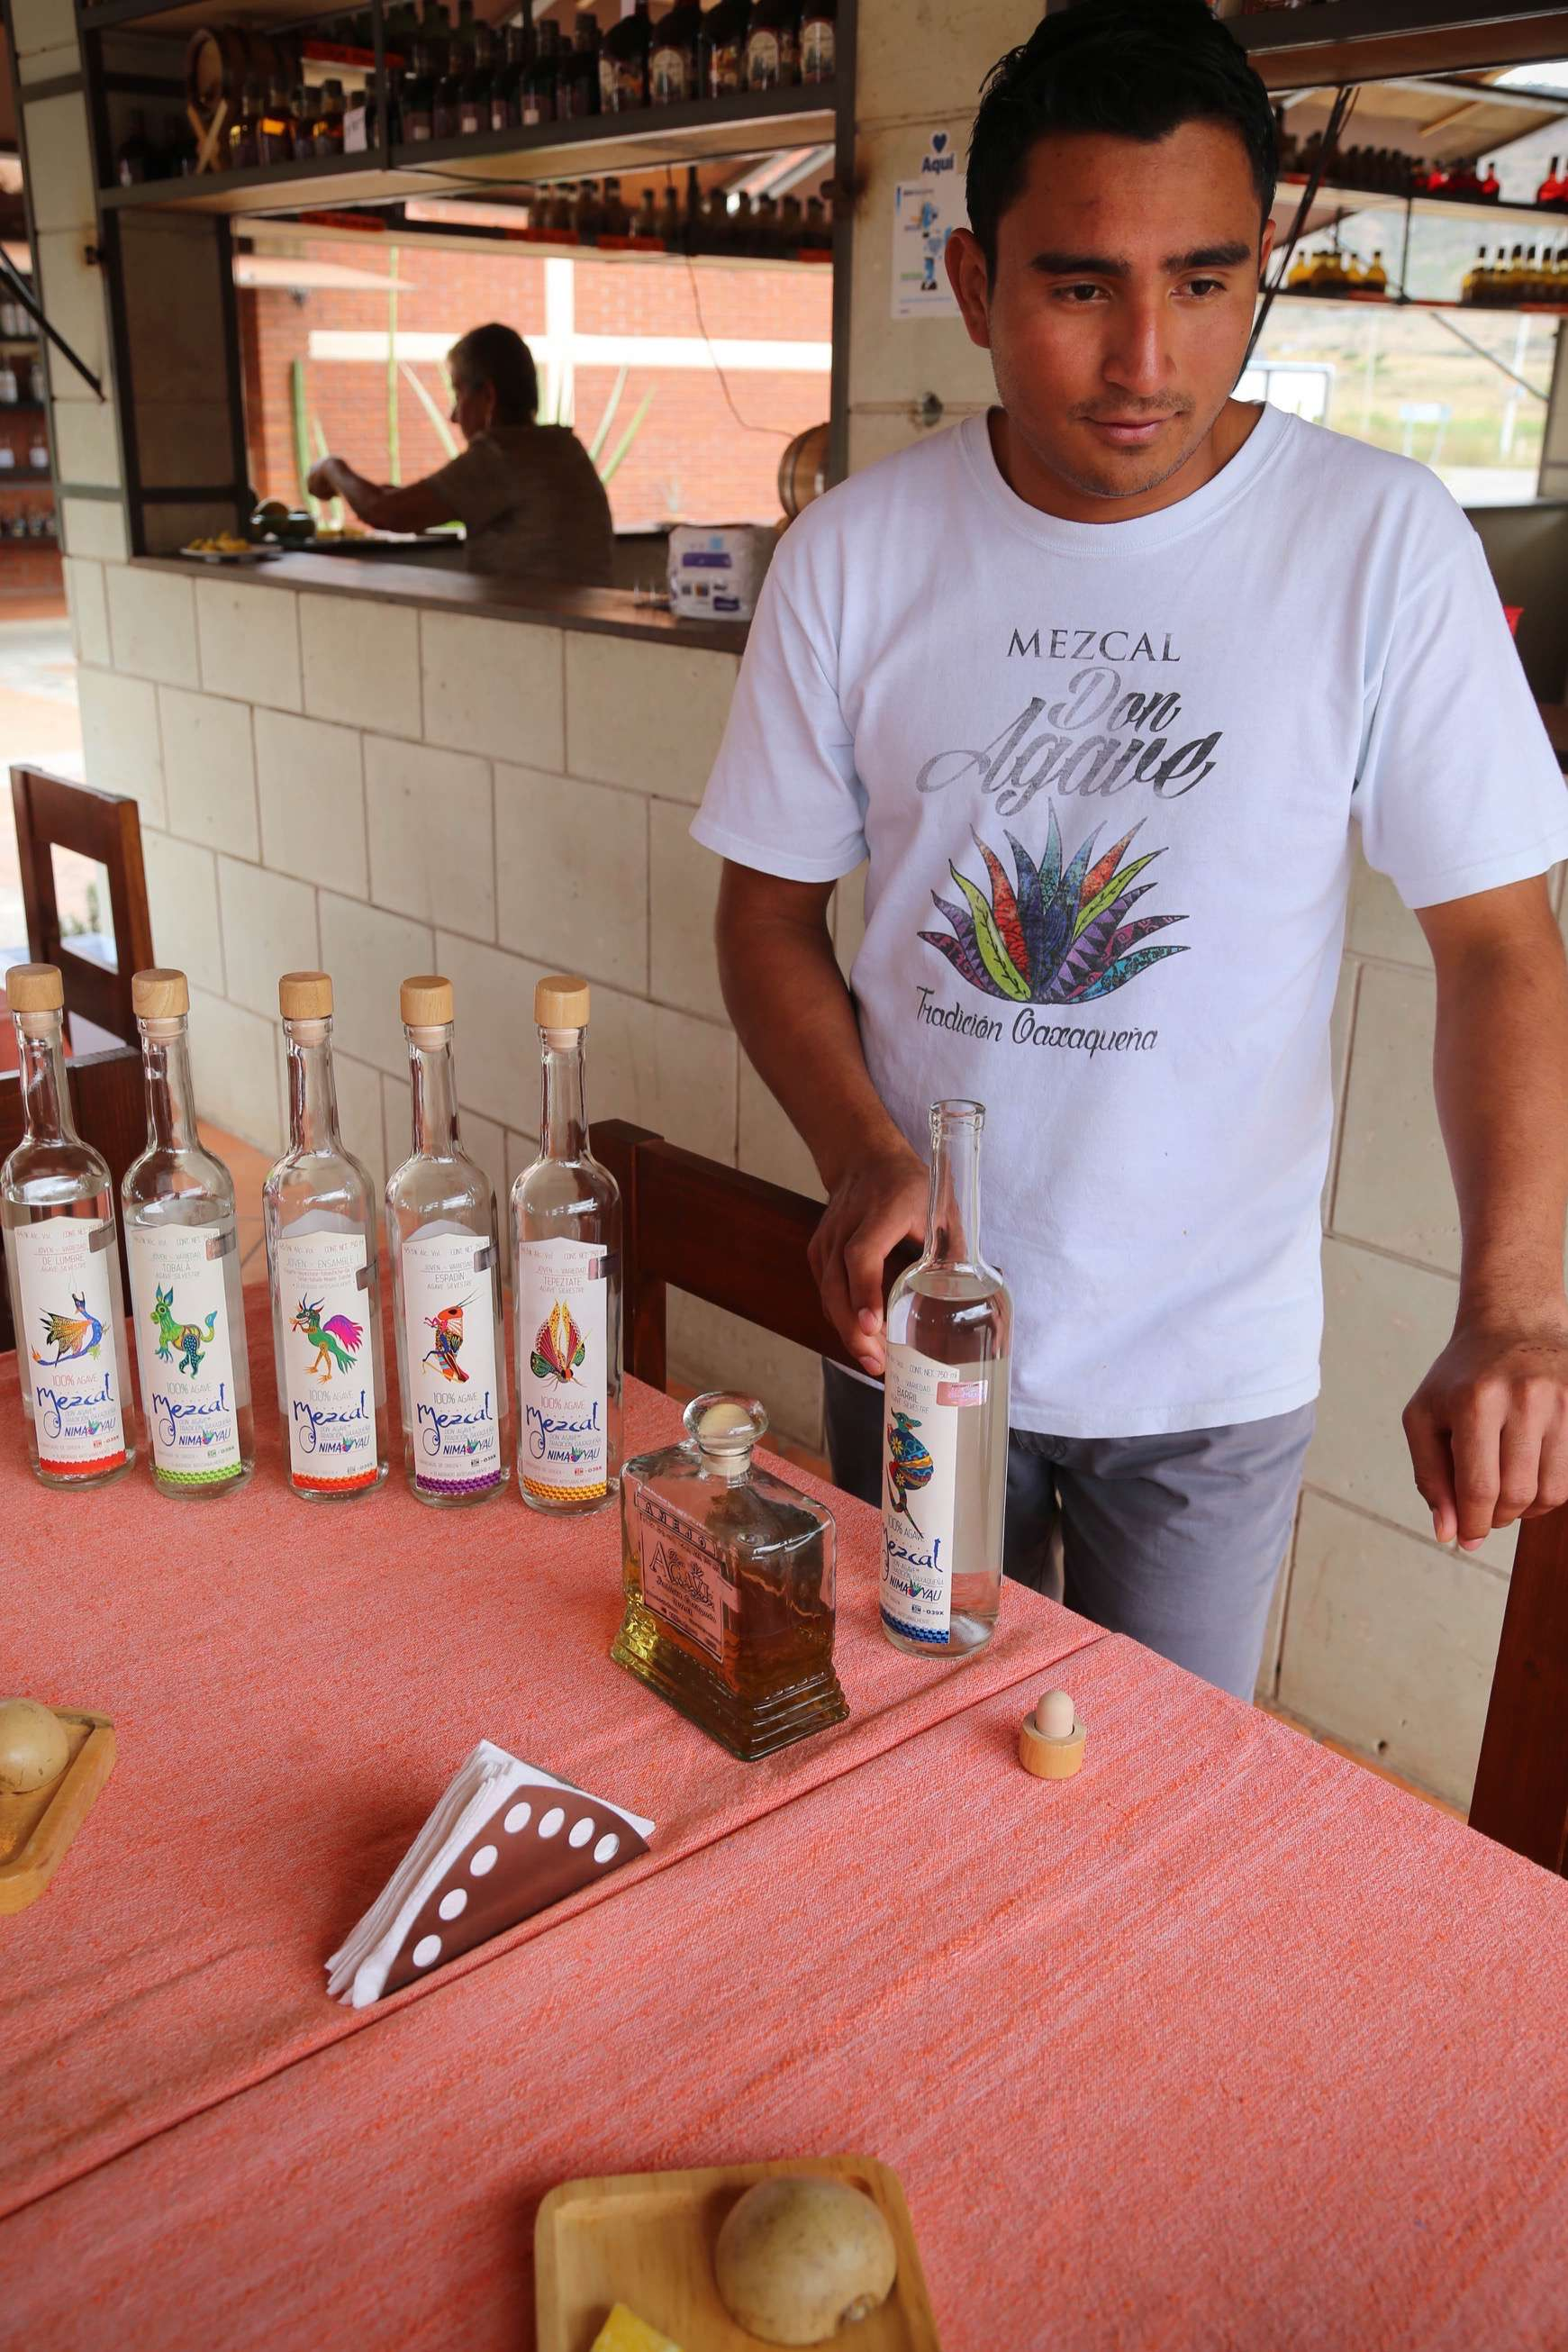 Explaining the subtlety and complexity of the various mezcals is an enjoyable learning experience.